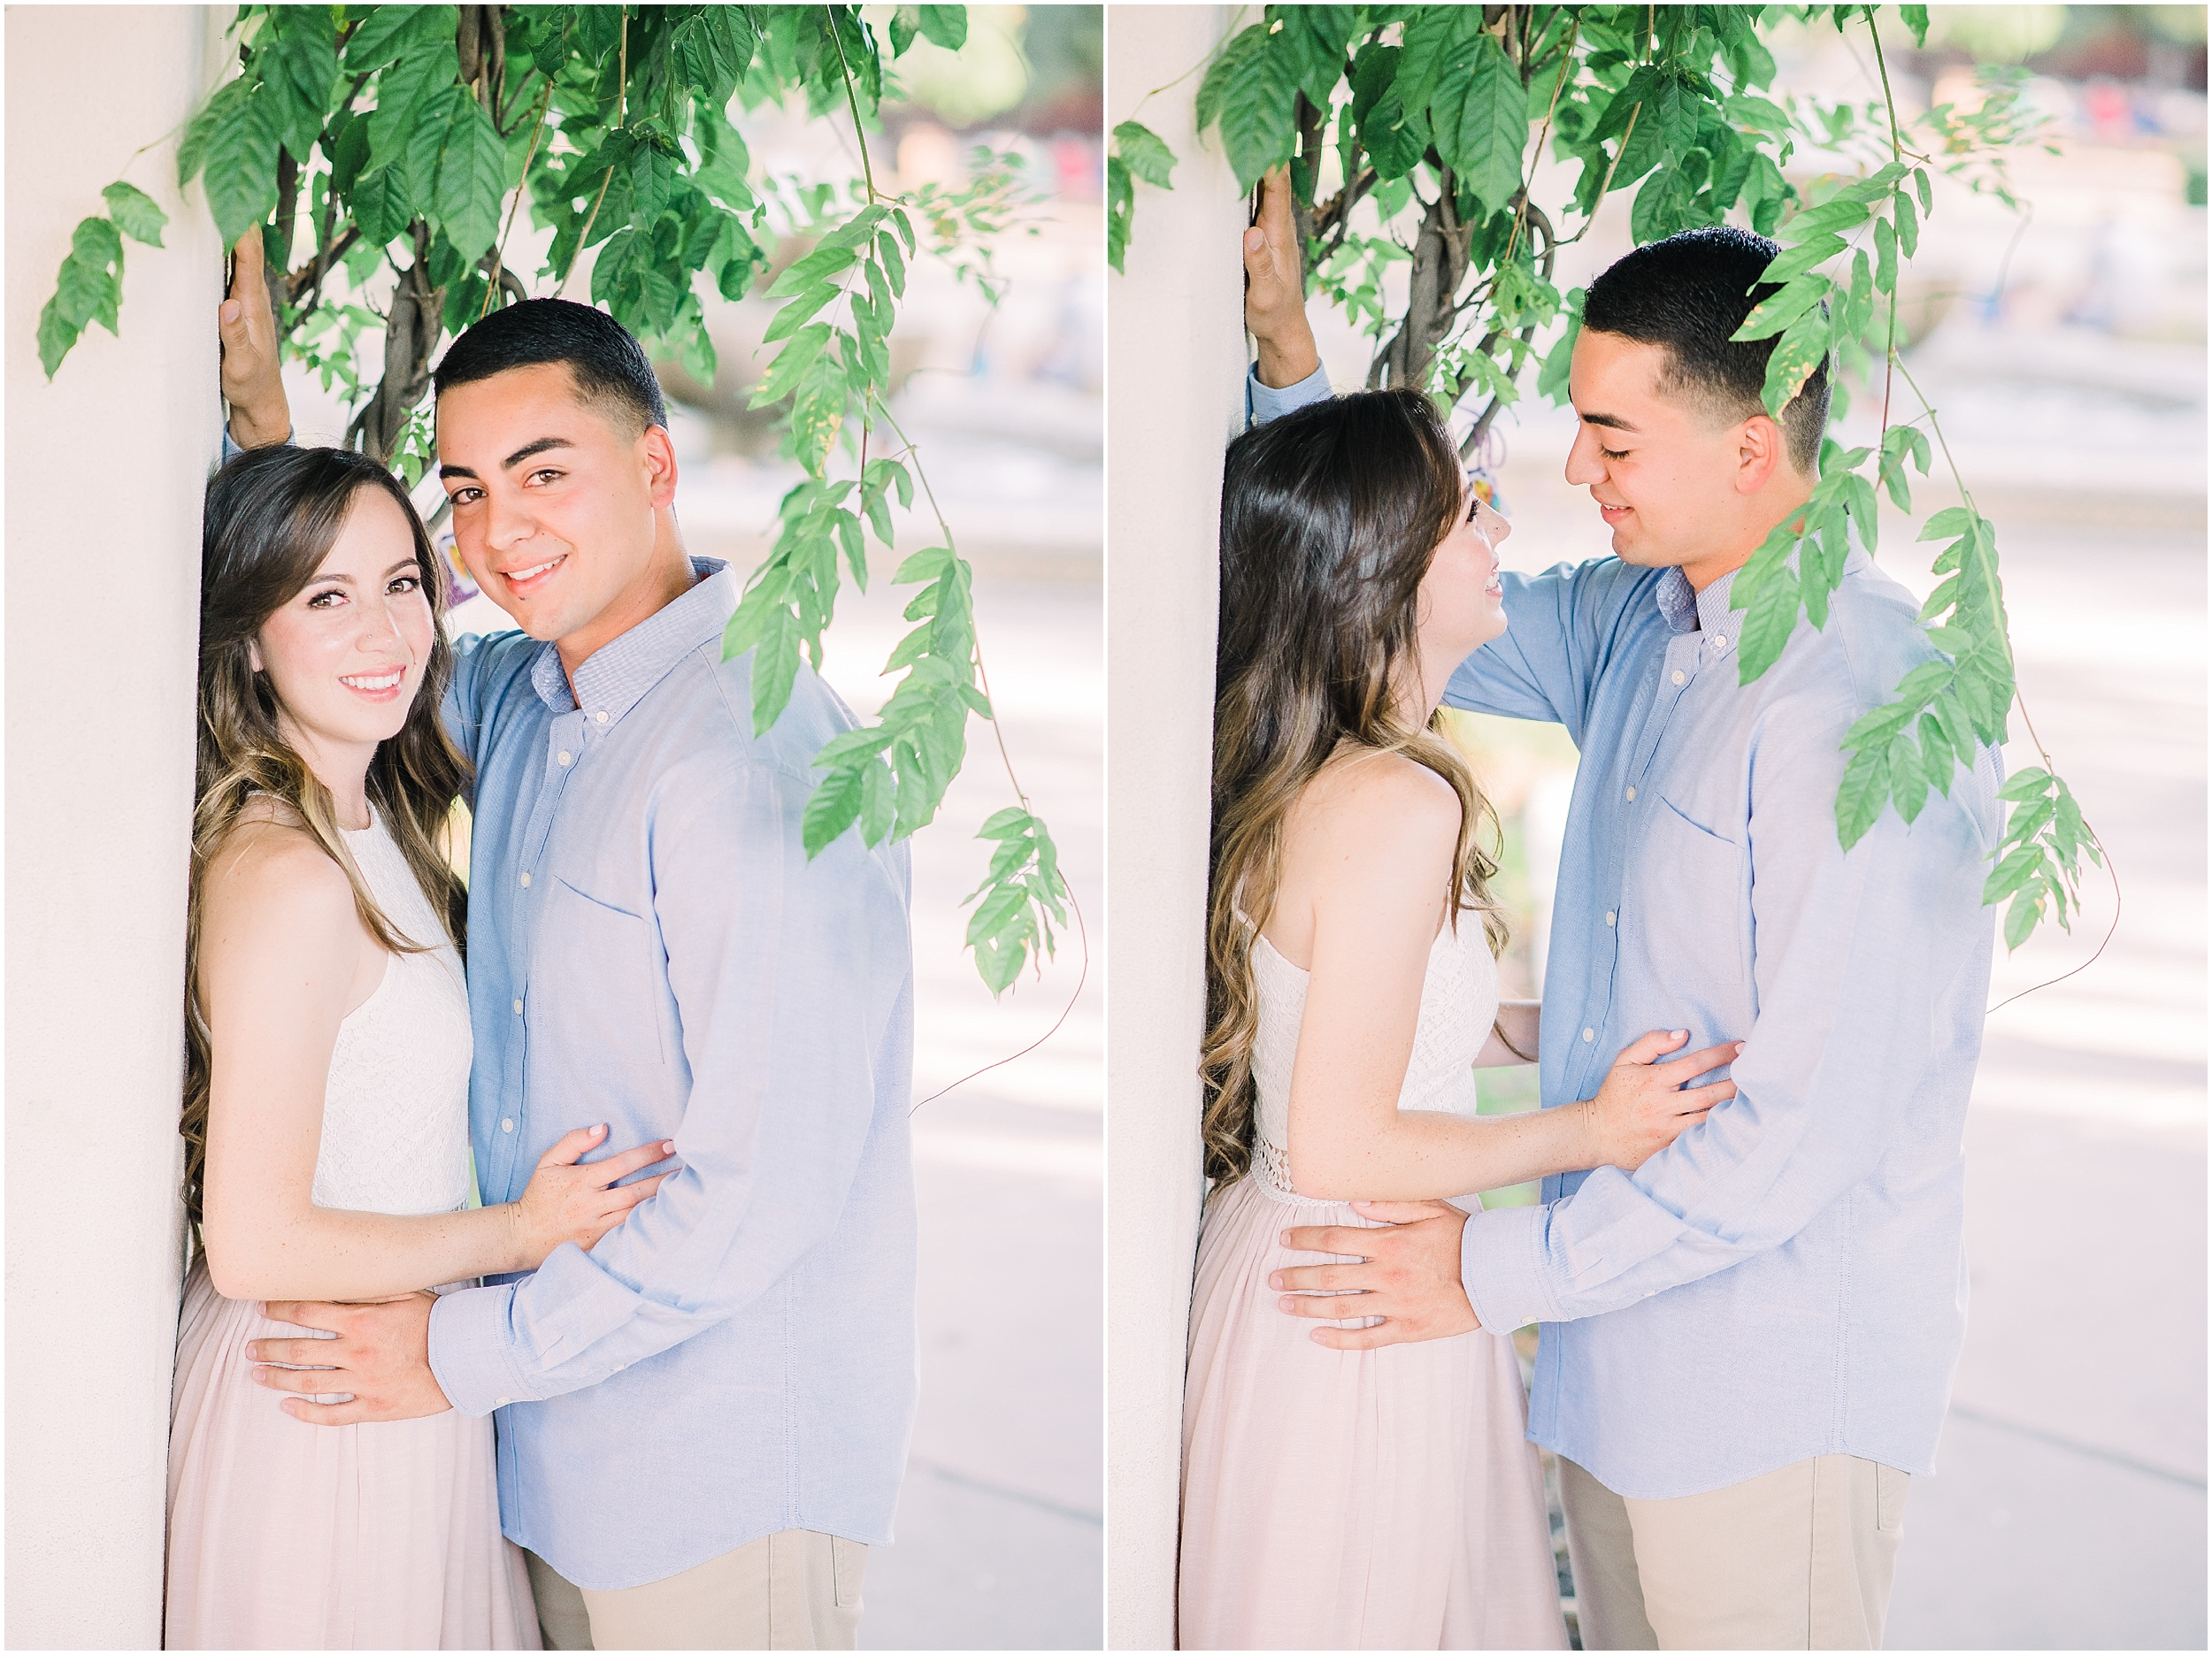 Valeria-Gonzalez-Photography-Wedding-and-Portrait-Photographer-Richmond-Virginia-Engagement-Session-in-Ojai-California_0012.jpg